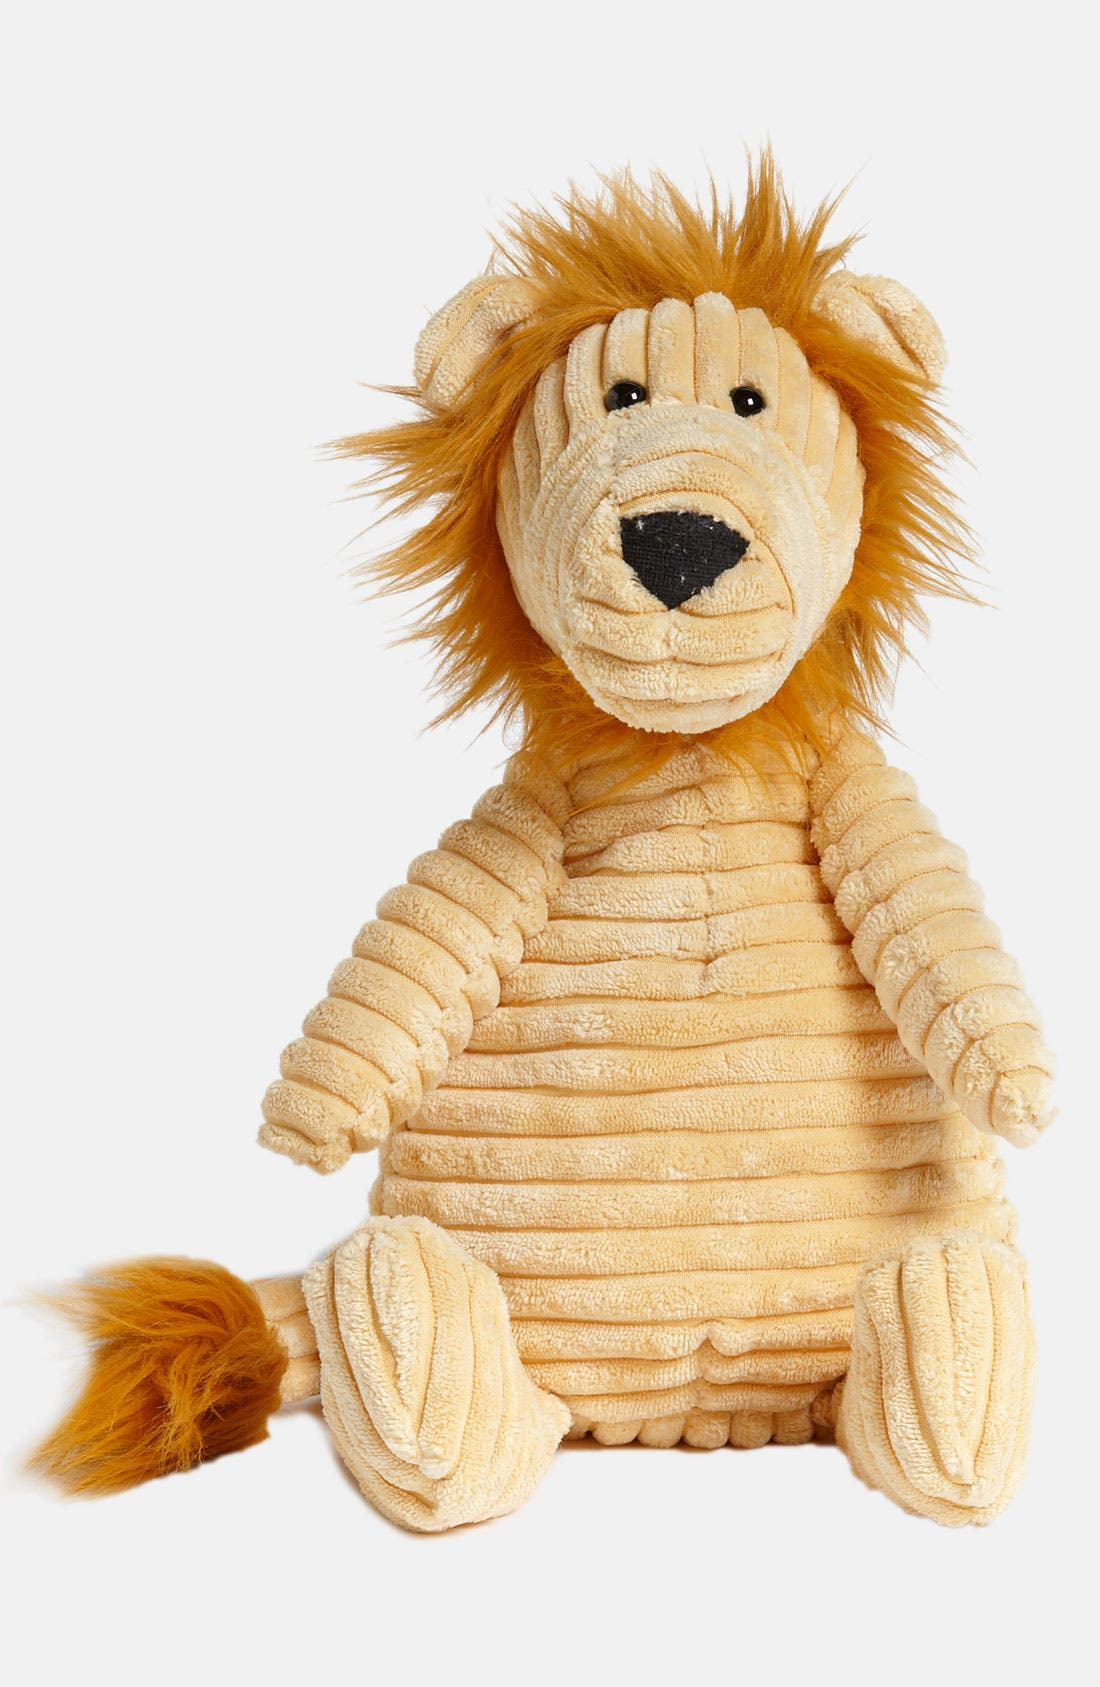 Alternate Image 1 Selected - Jellycat 'Cordy Roy Lion' Stuffed Animal